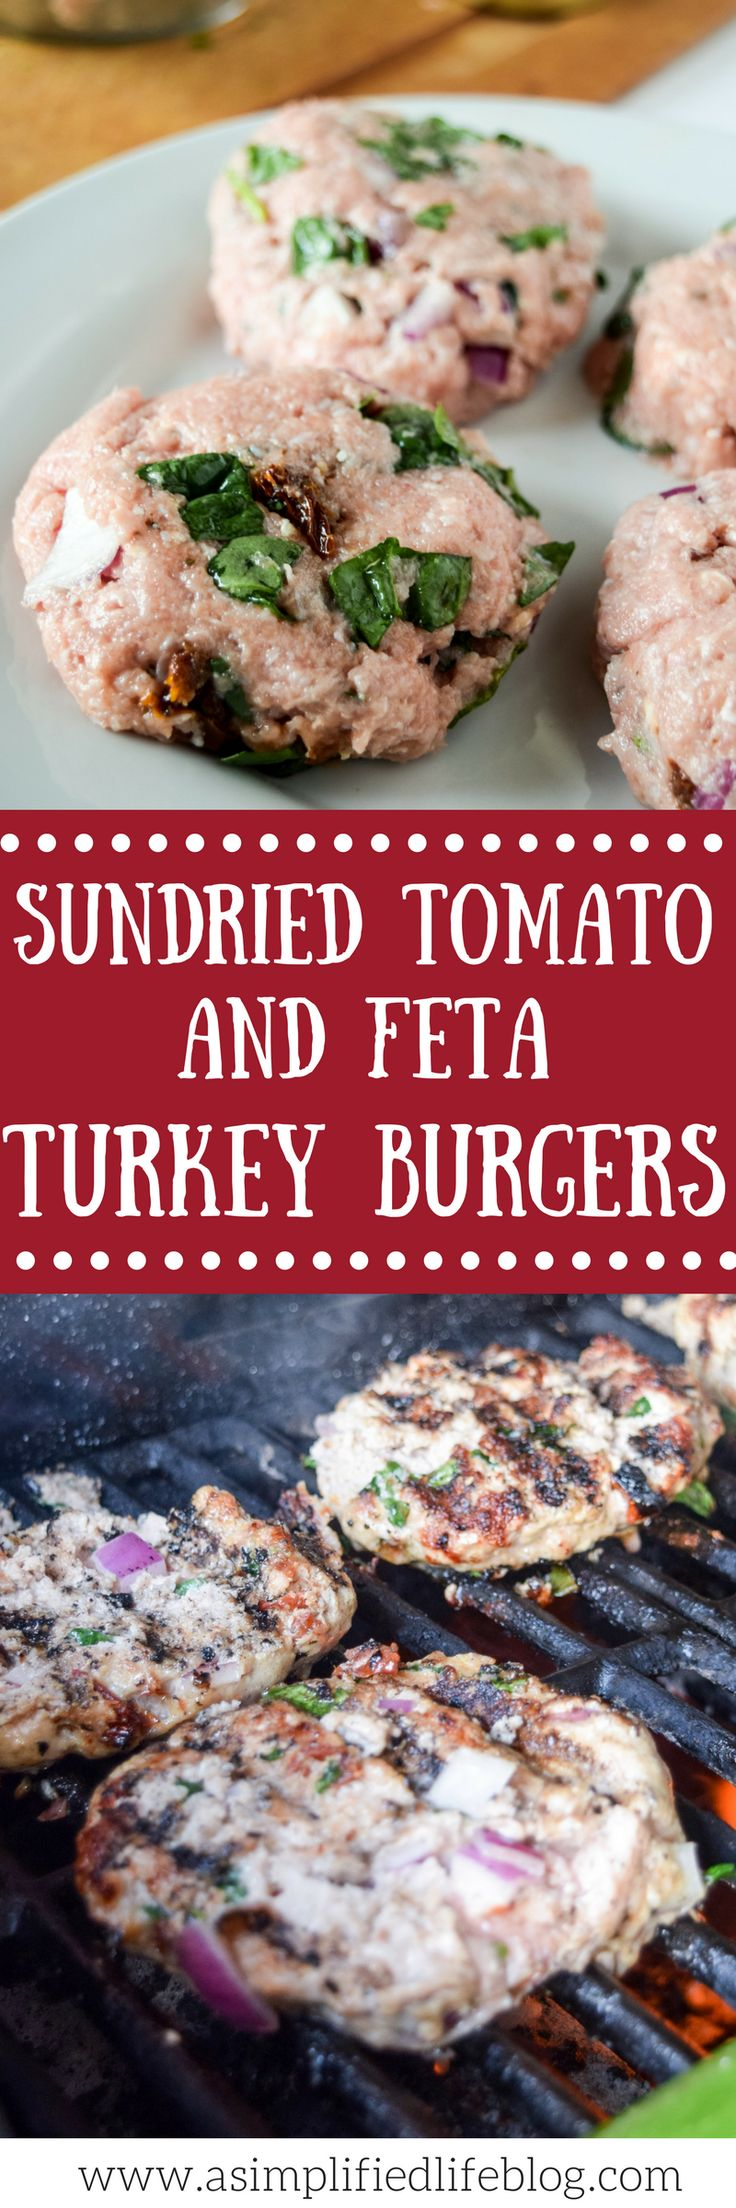 turkey burger recipe | turkey burgers | how to make turkey burgers | healthy bbq ideas | sundried tomato and feta turkey burgers | summer grilling ideas |